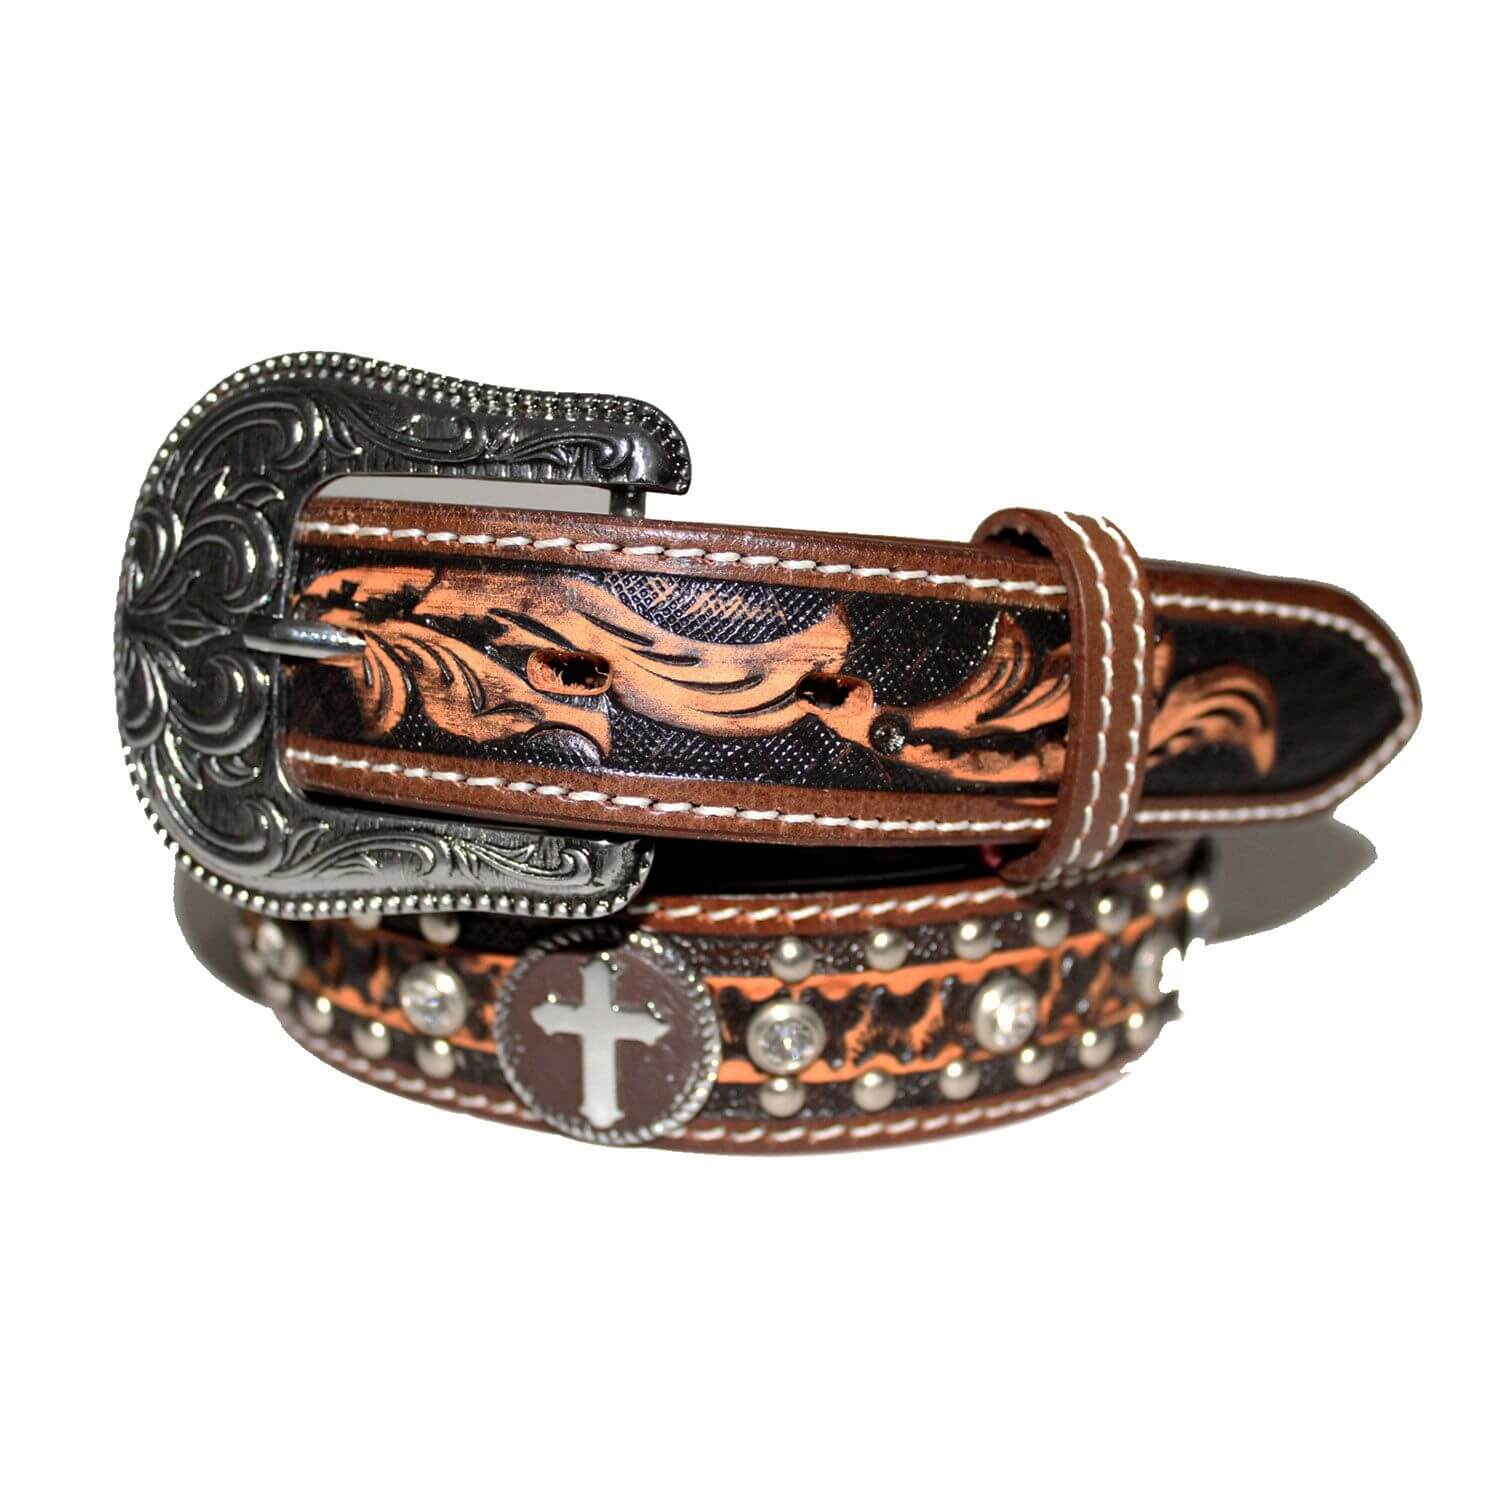 Cinto Arizona Belts Infantil Marrom 6013 - Arena Country Echaporã 697667ac148